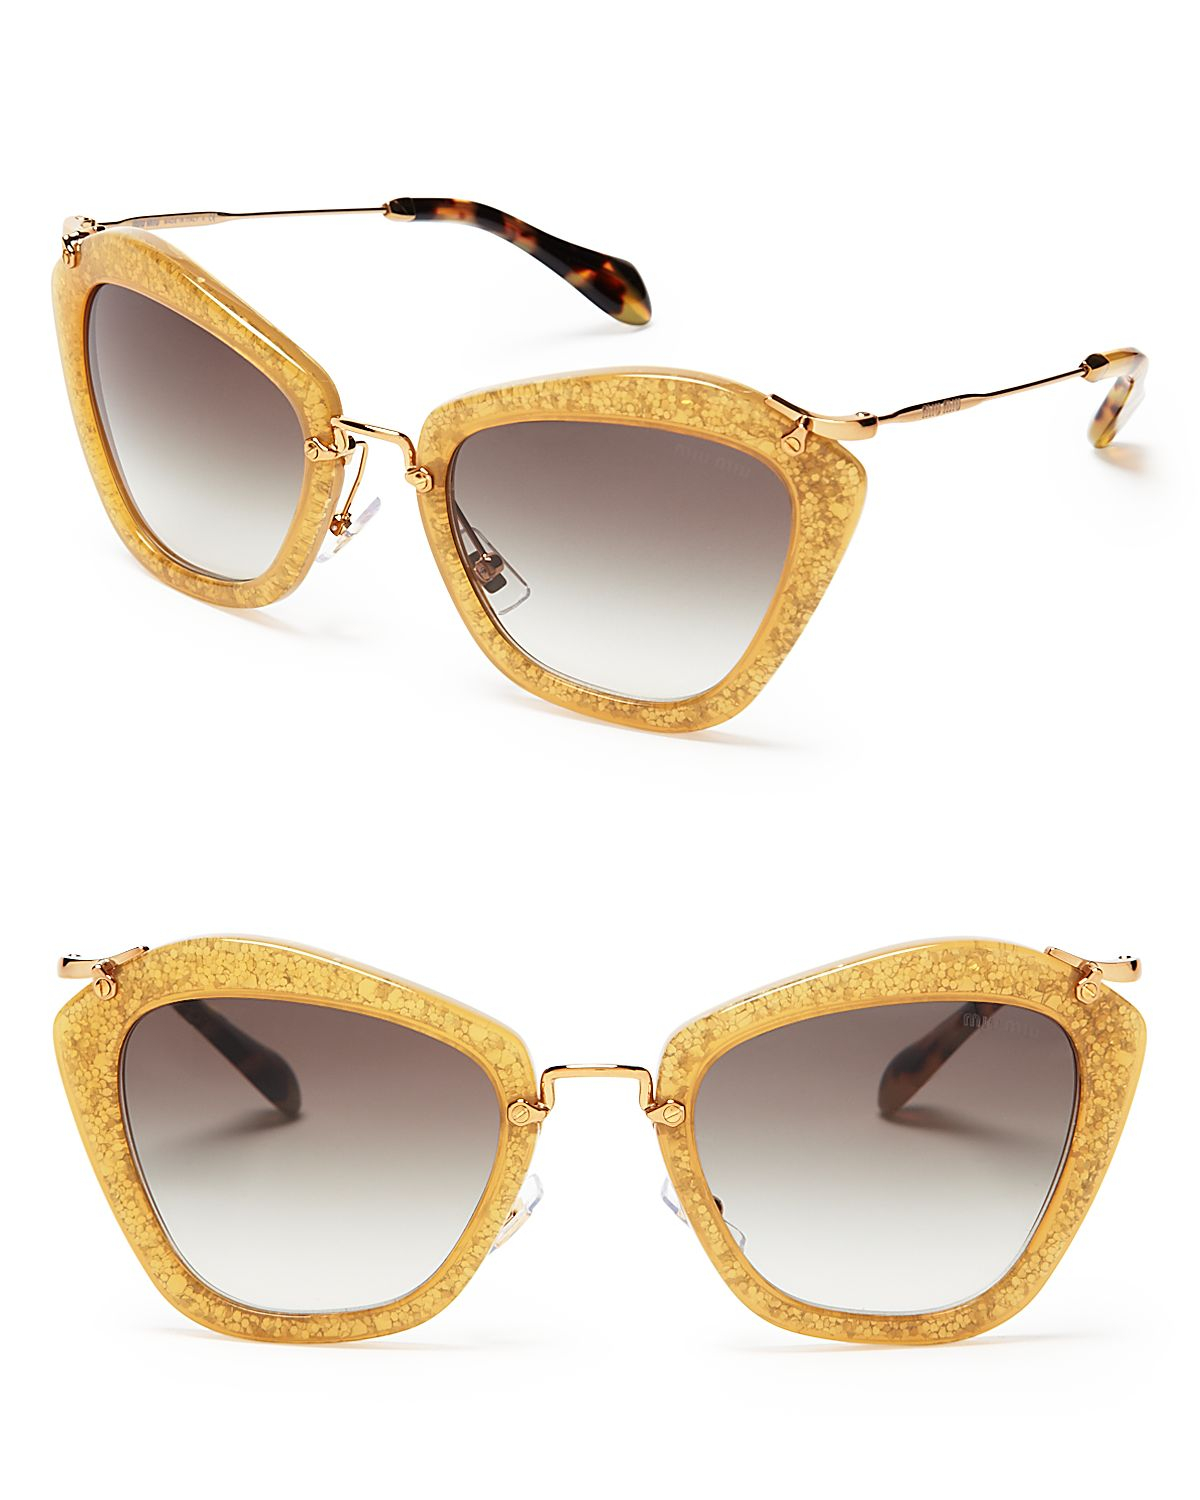 397694c0458d Gallery. Previously sold at: Bloomingdale's · Women's Miu Miu Glitter ...